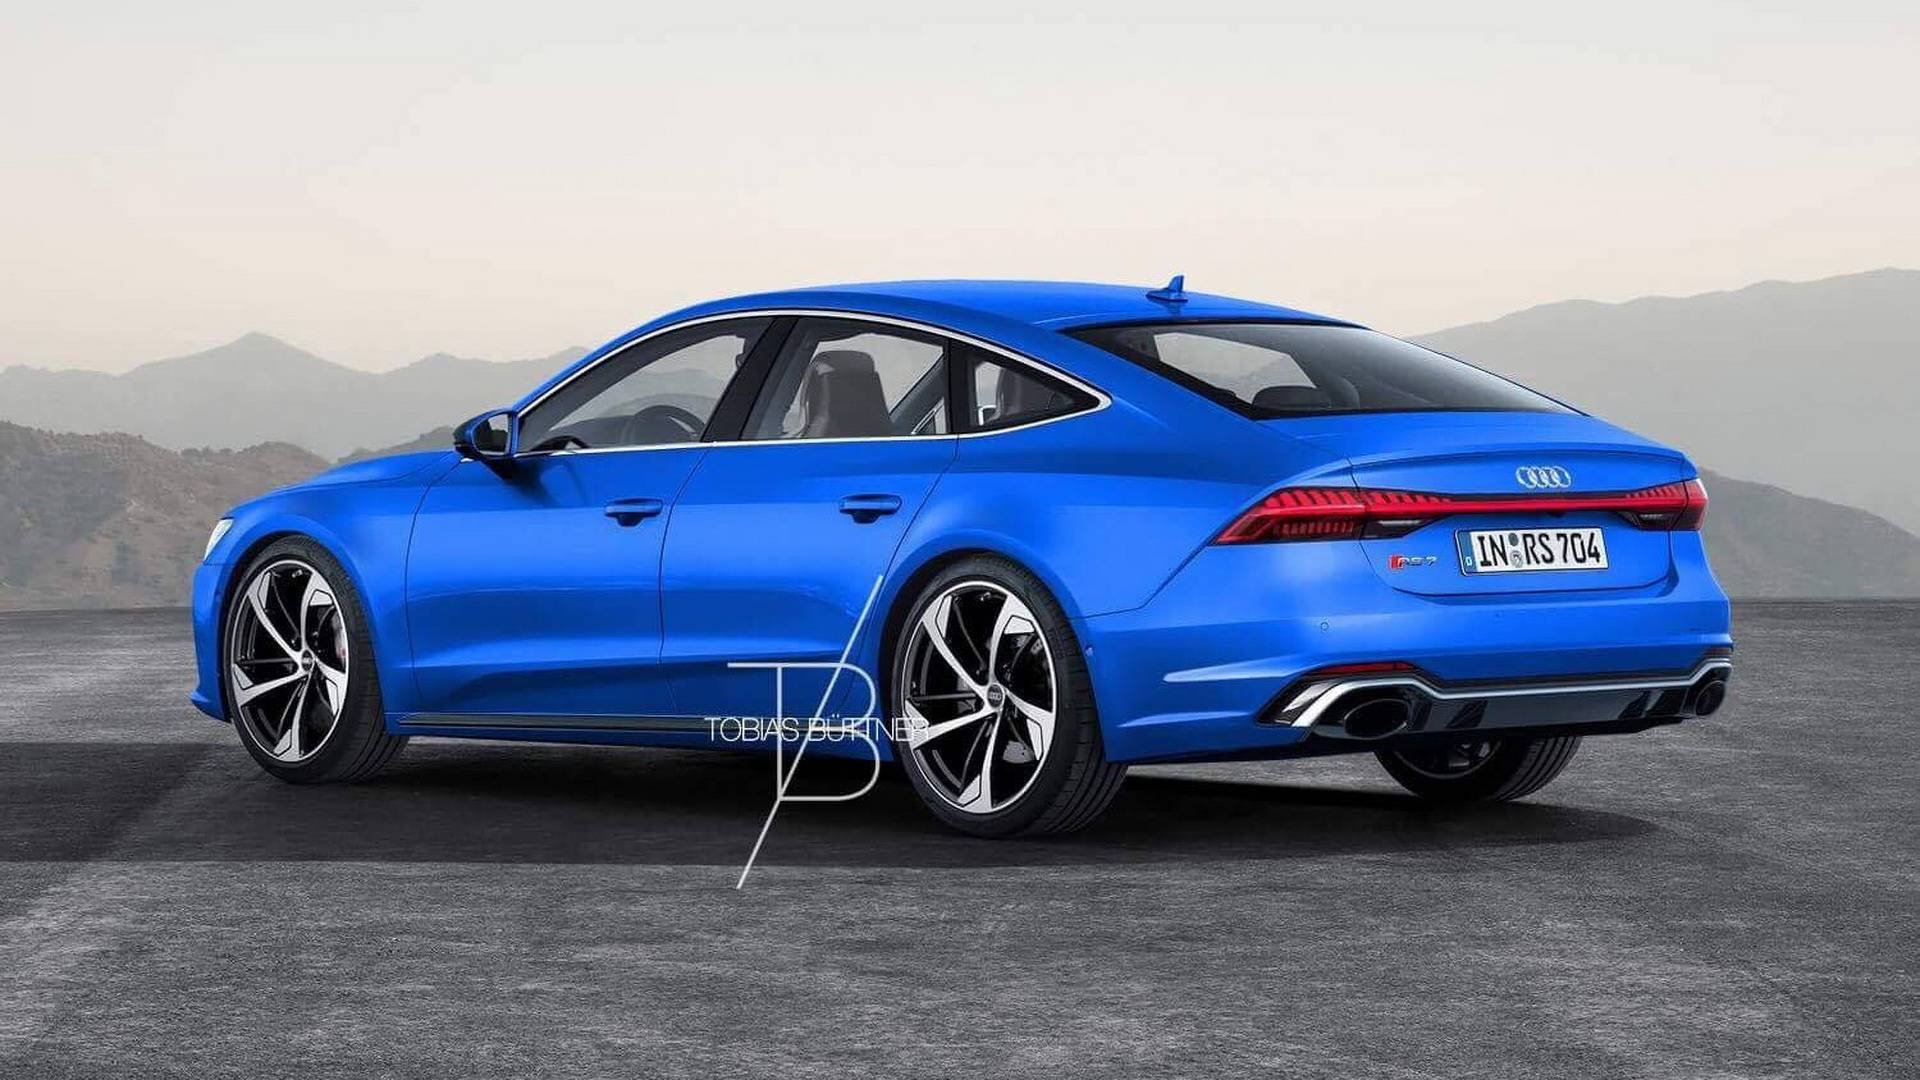 2020 Audi Rs7 Rendering Is Begging For 700 Hp Hybrid V8